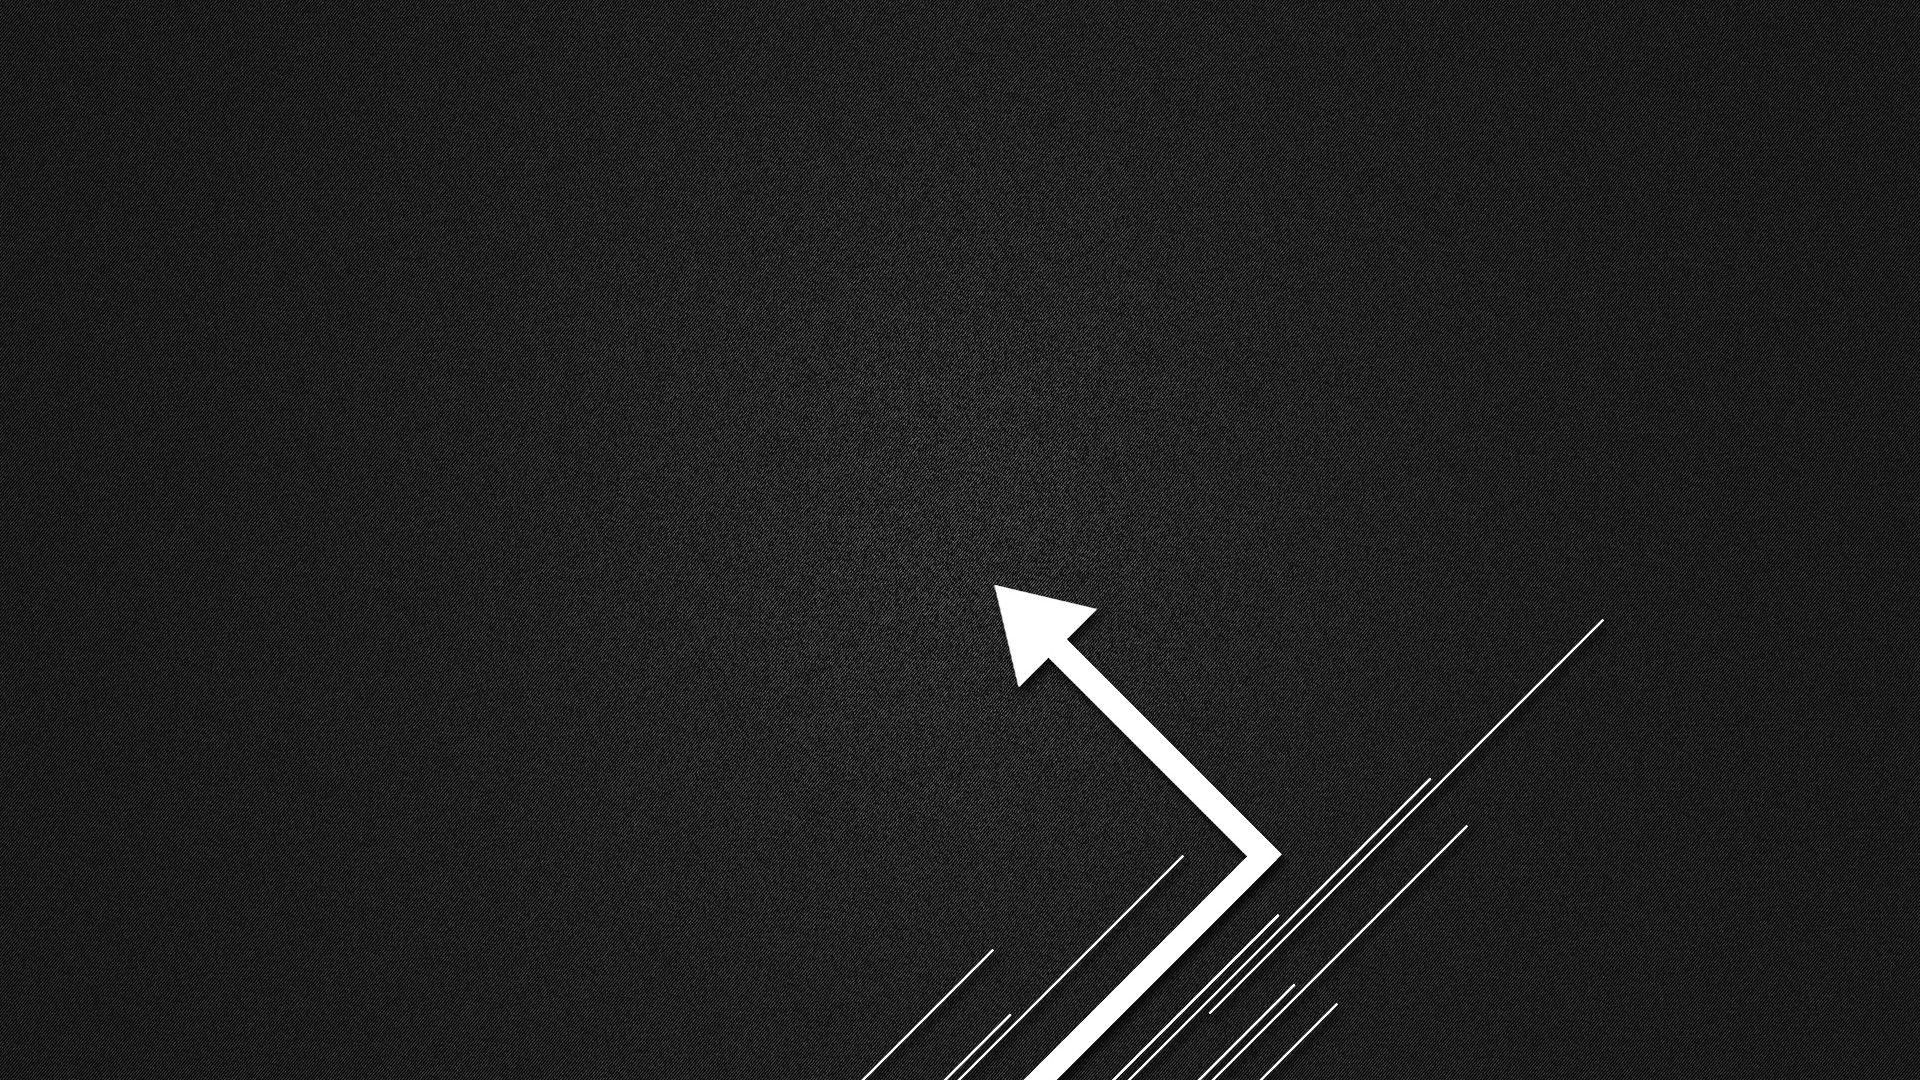 Full Size Black And Grey Desktop Wallpaper 1920x1080 Minimalist Wallpaper Black Abstract Background Black Desktop Background